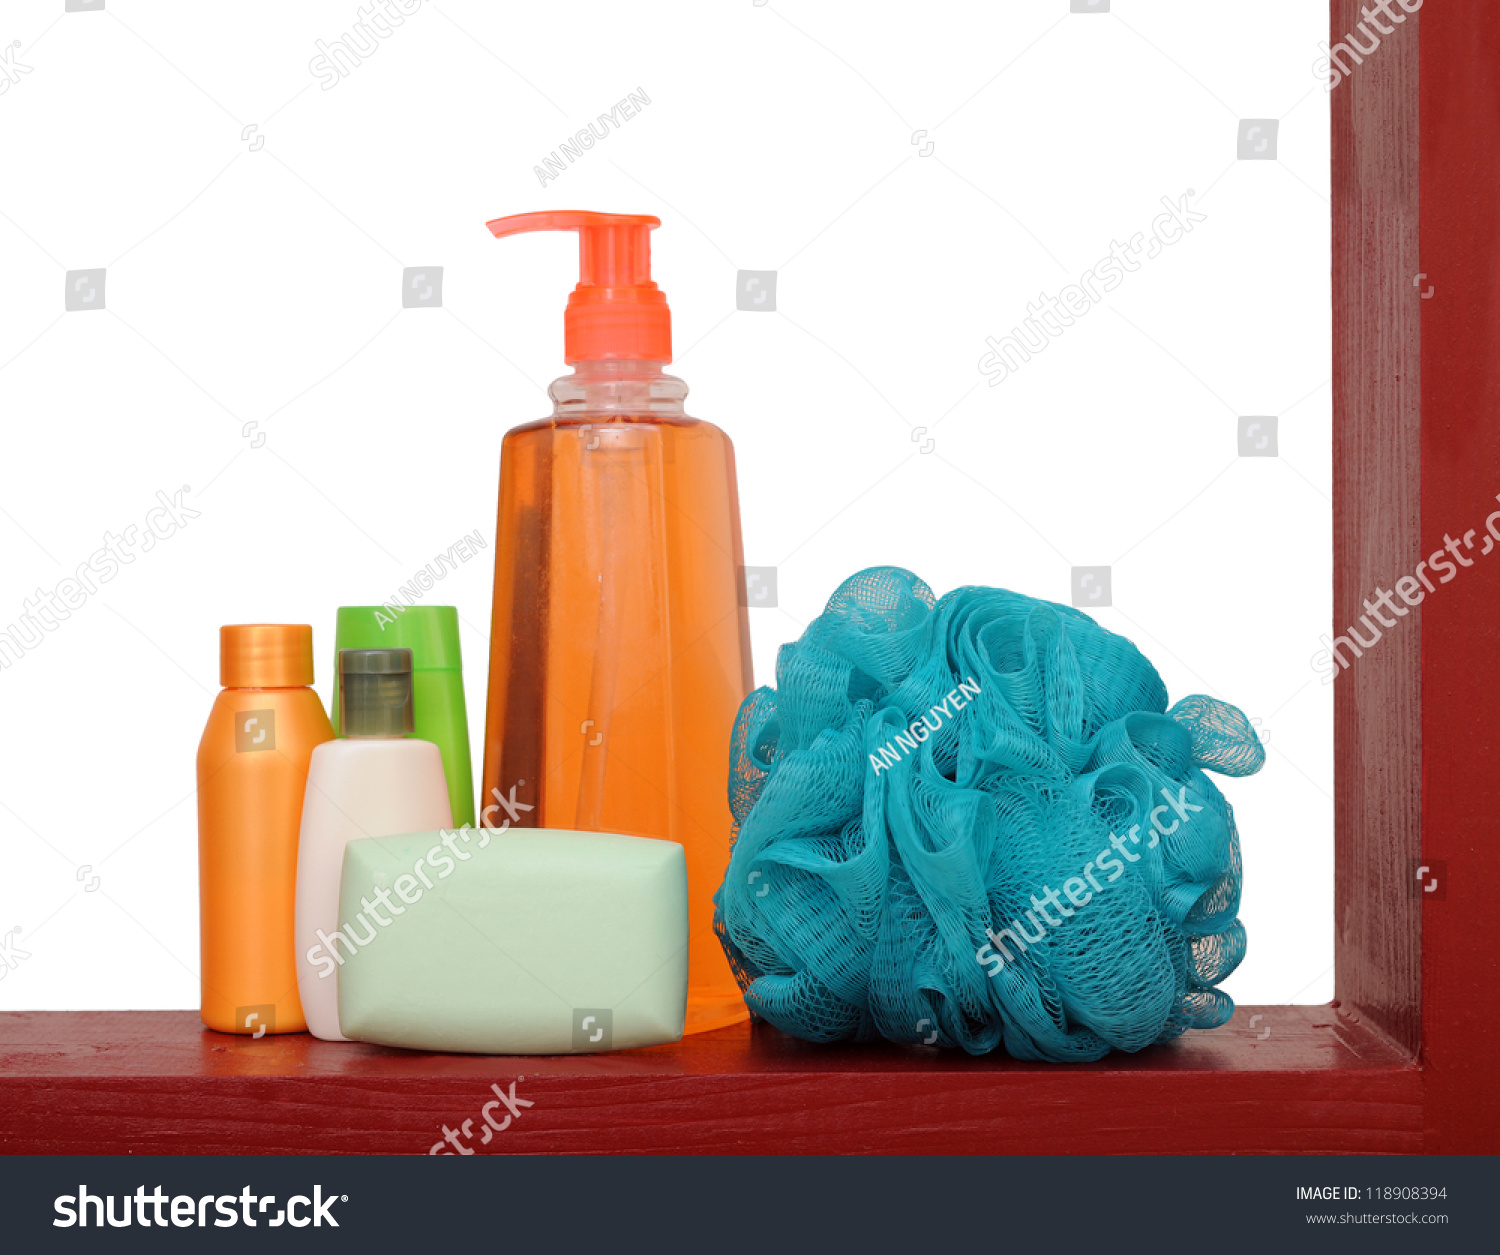 A concept of bathroom stuff stock photo 118908394 for Restroom stuff